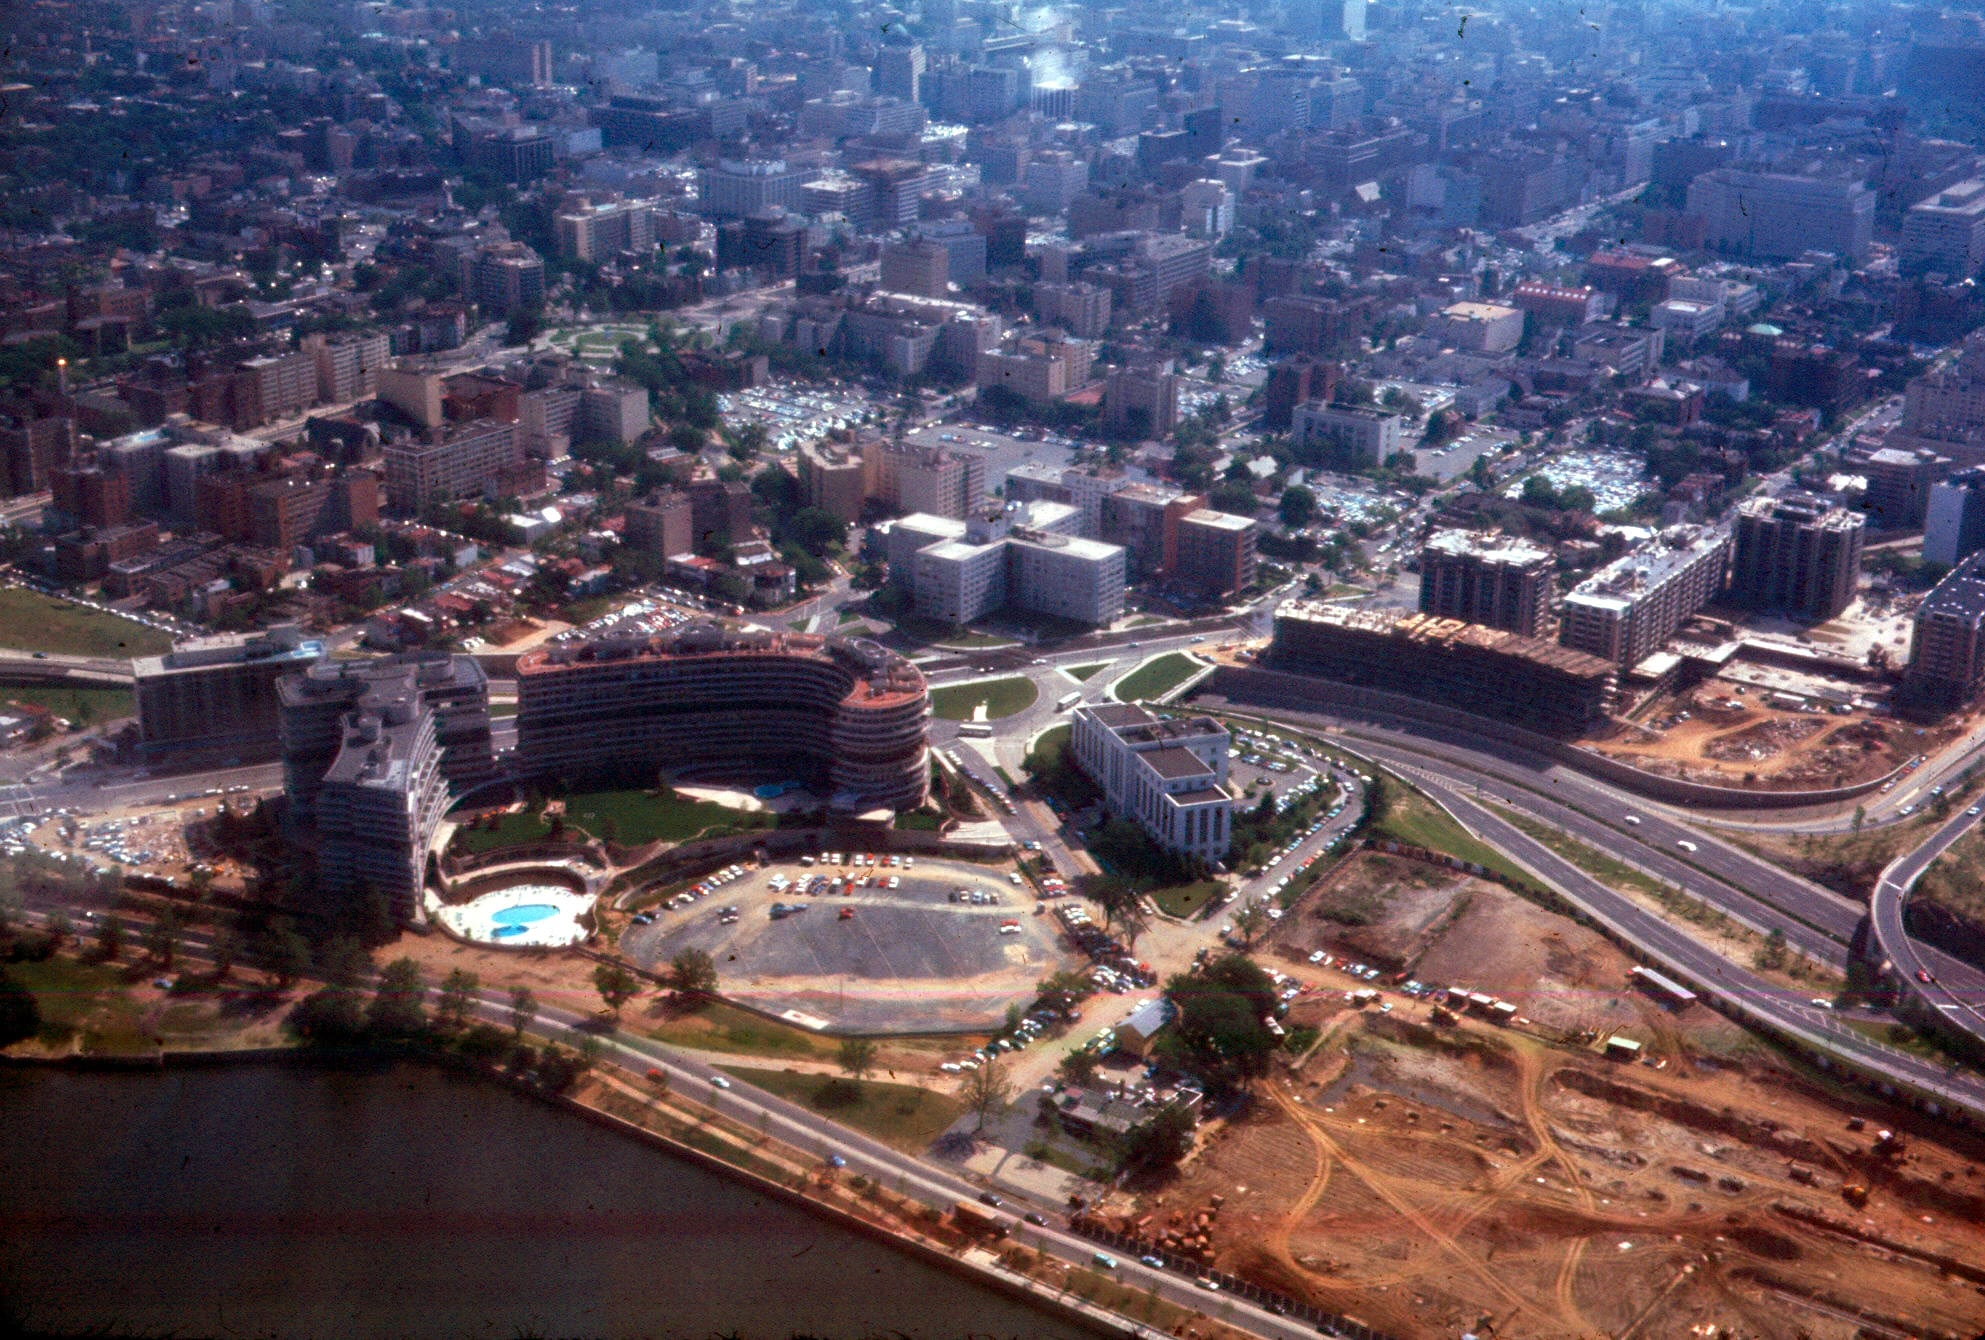 View from a Lockheed Elektra on approach to Washington National in 1967. The Watergate complex is under construction to the left and the Kennedy Center to the right.